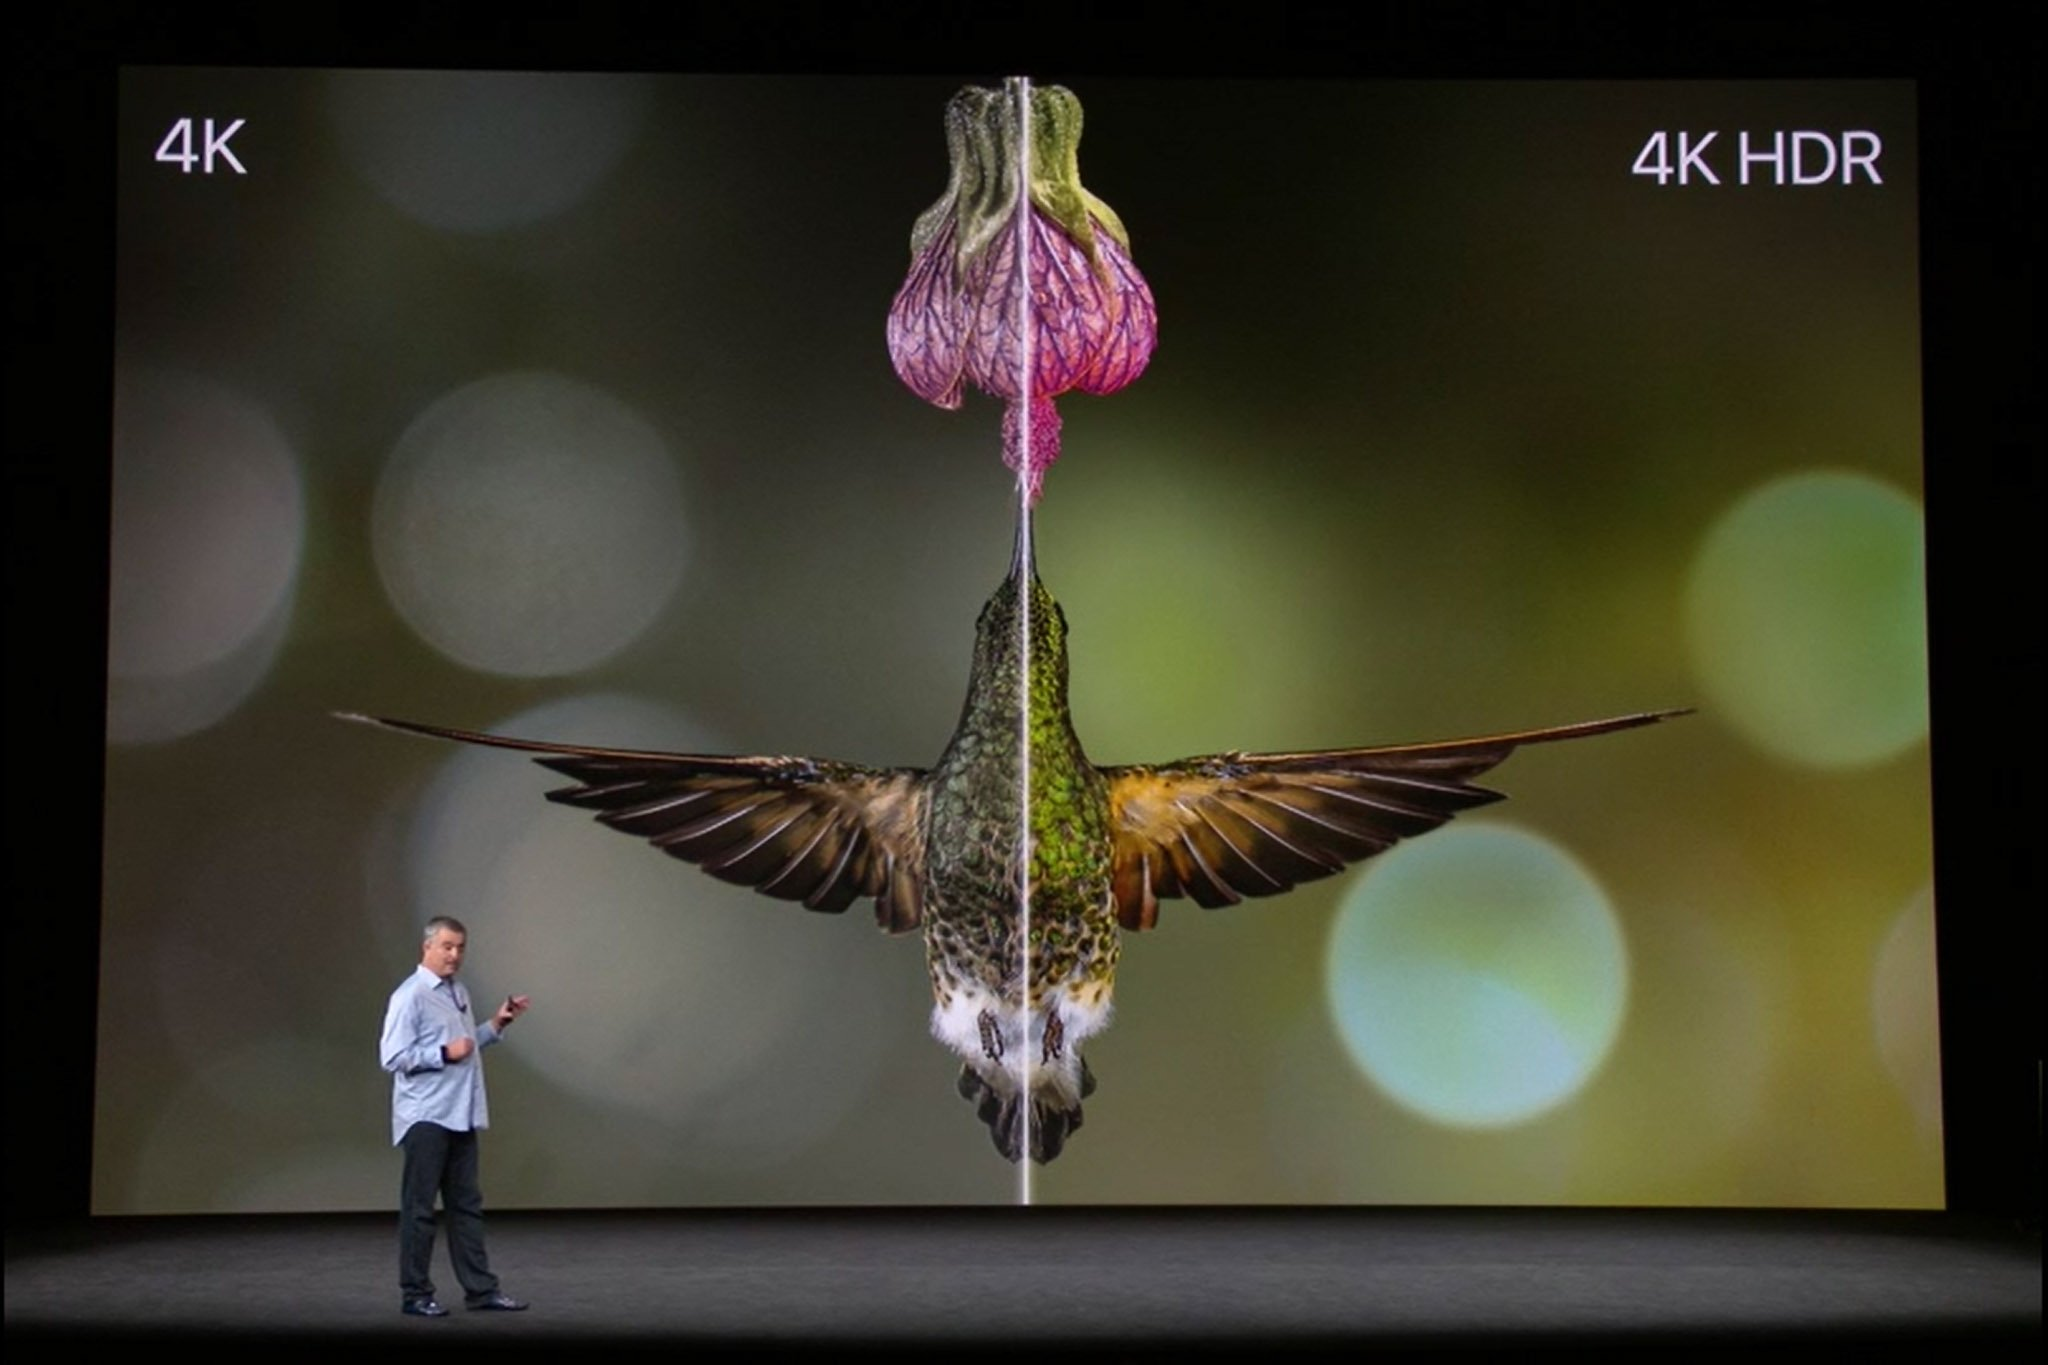 Apple TV 4K: Eddie Cue says high dynamic range (HDR) is more important than 4x pixel resolution. #AppleEvent https://t.co/LVAAUvsXT4